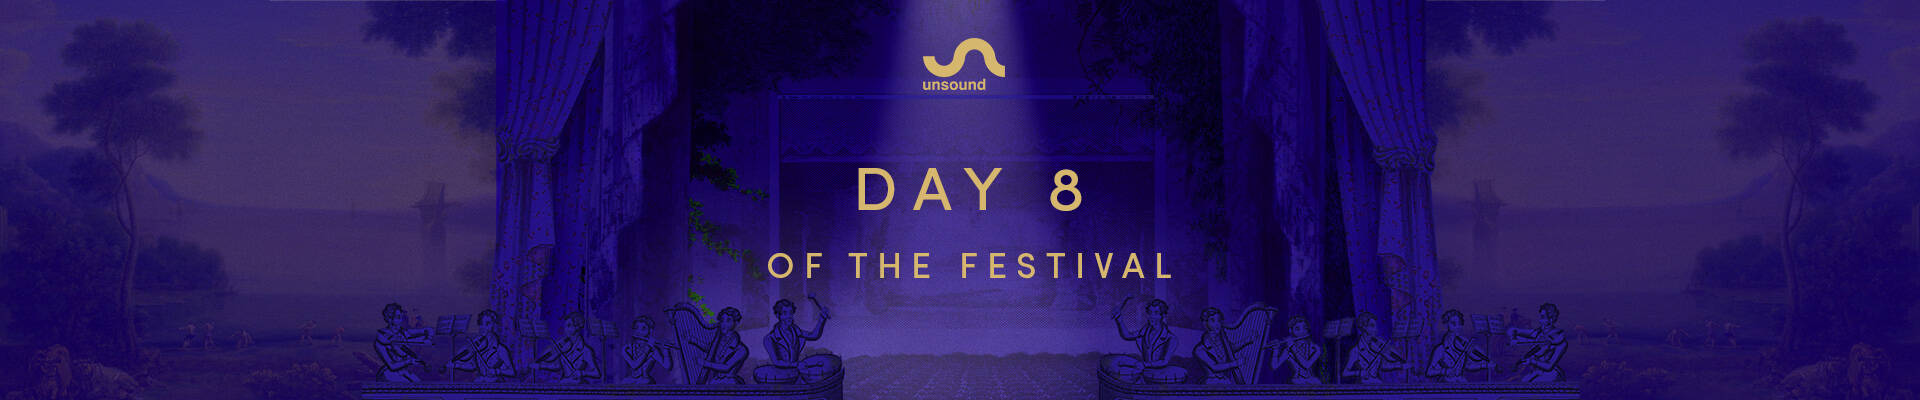 unsound day 8 pic